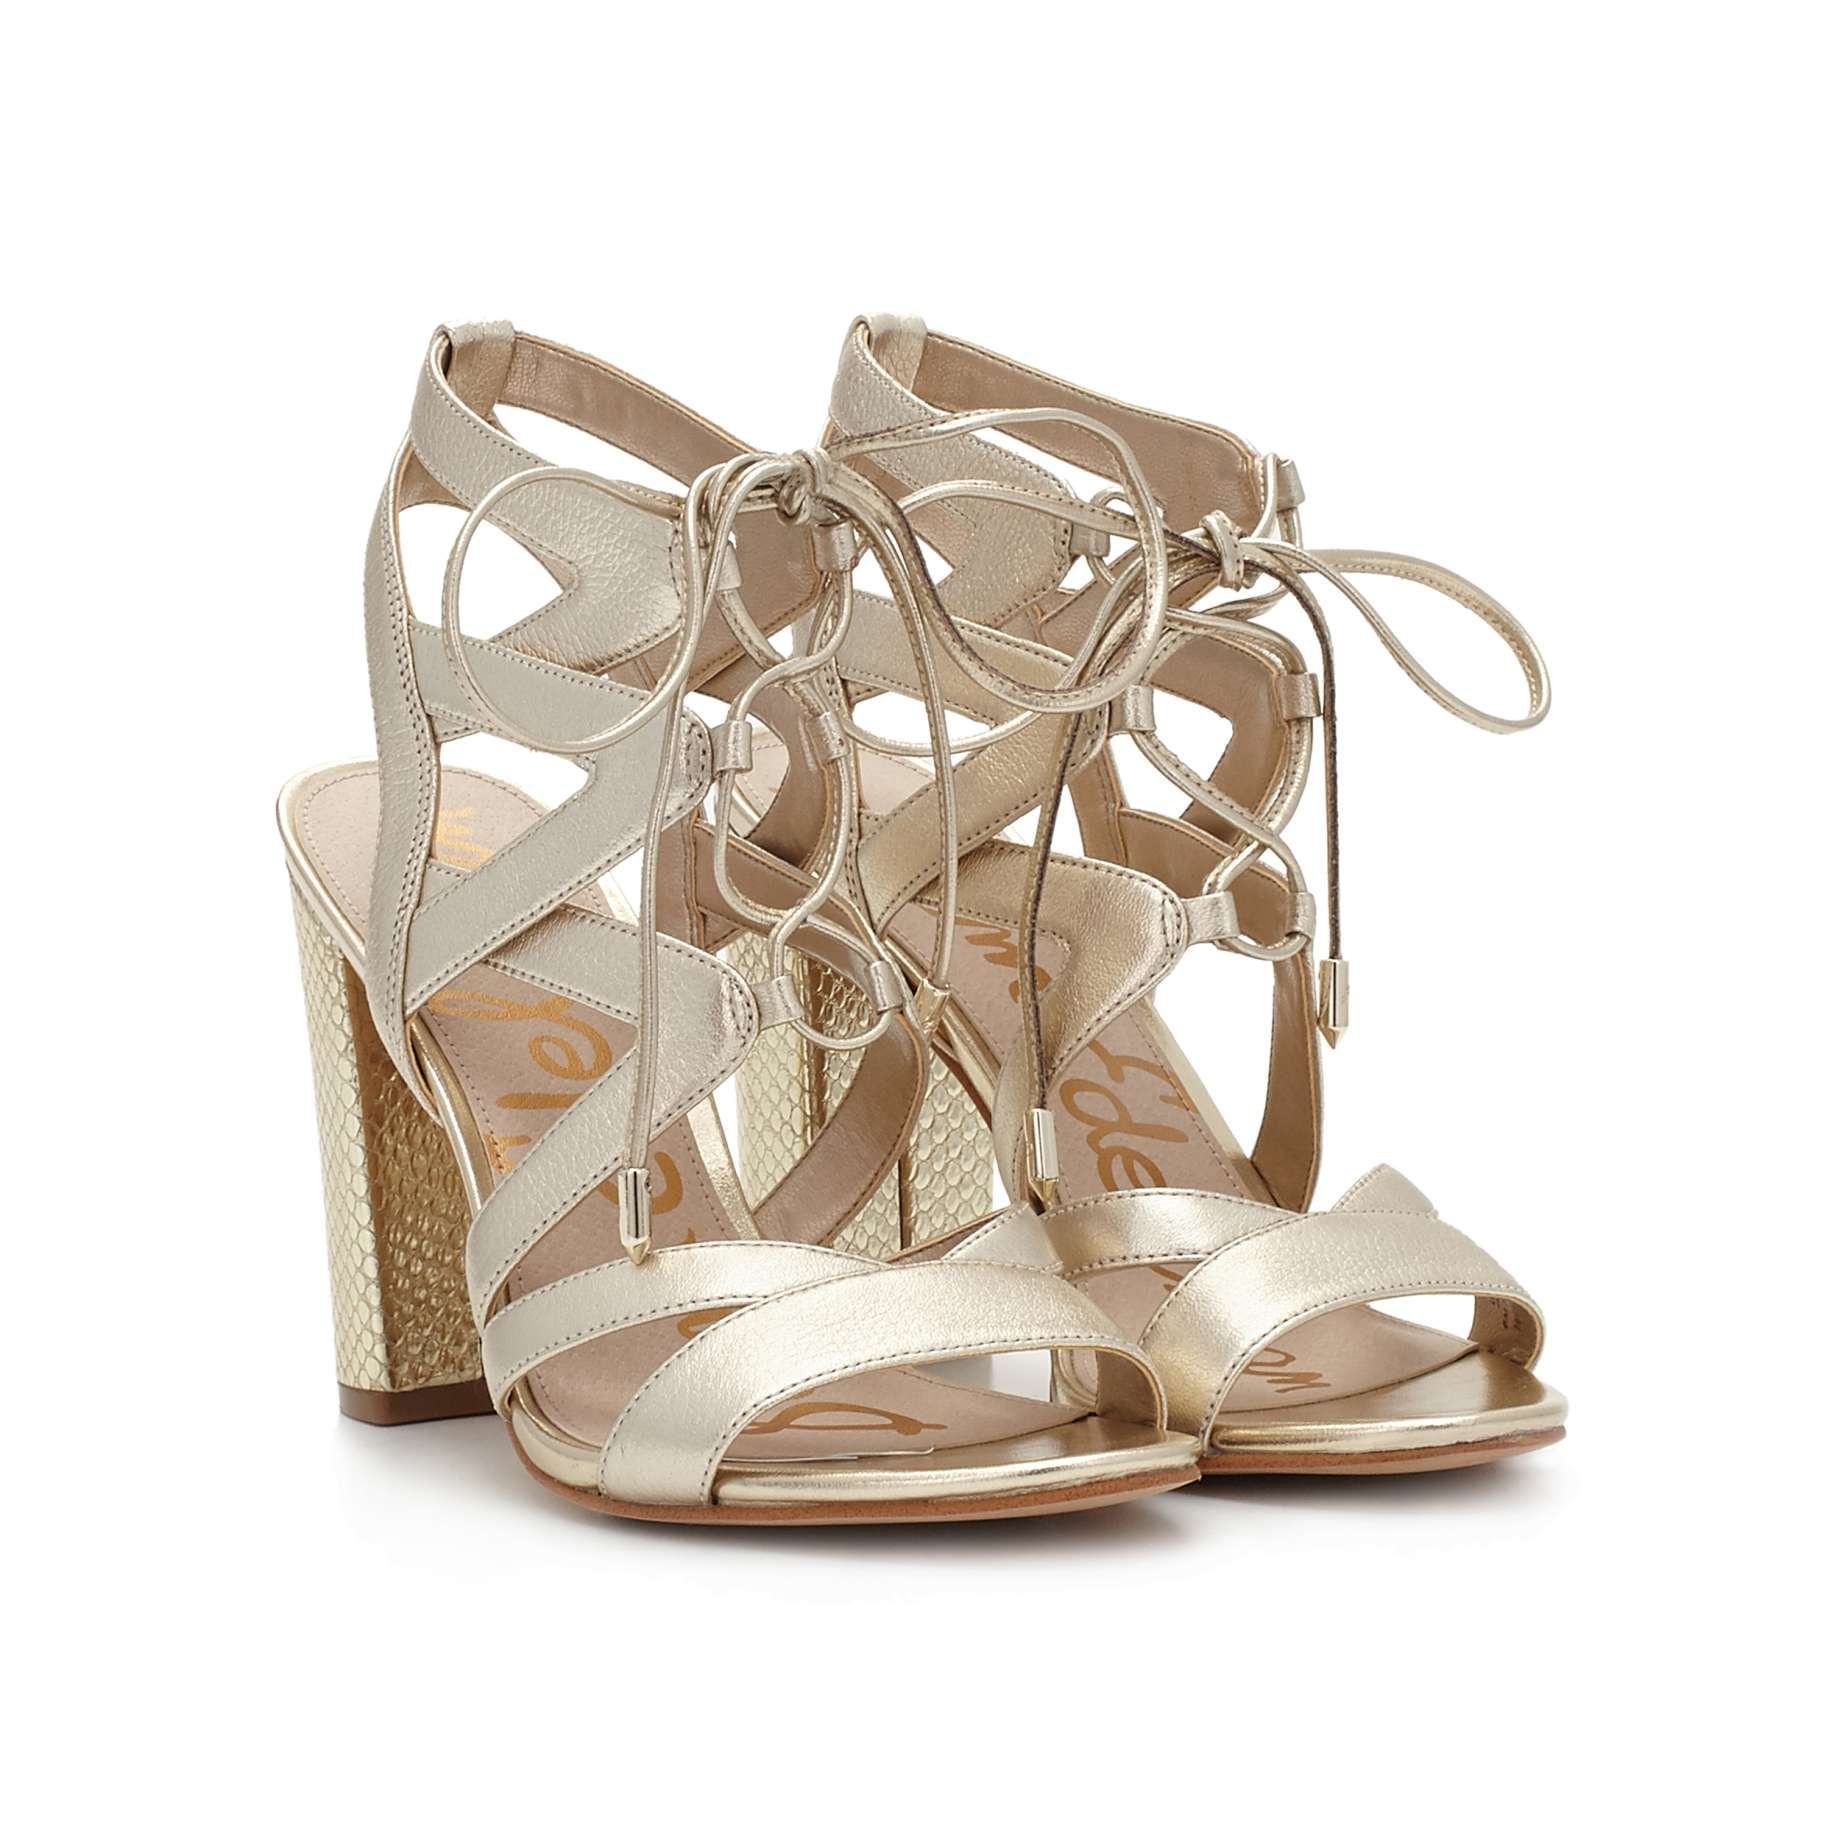 084d15094 Yardley Lace-Up Heeled Sandal by Sam Edelman - - View 1